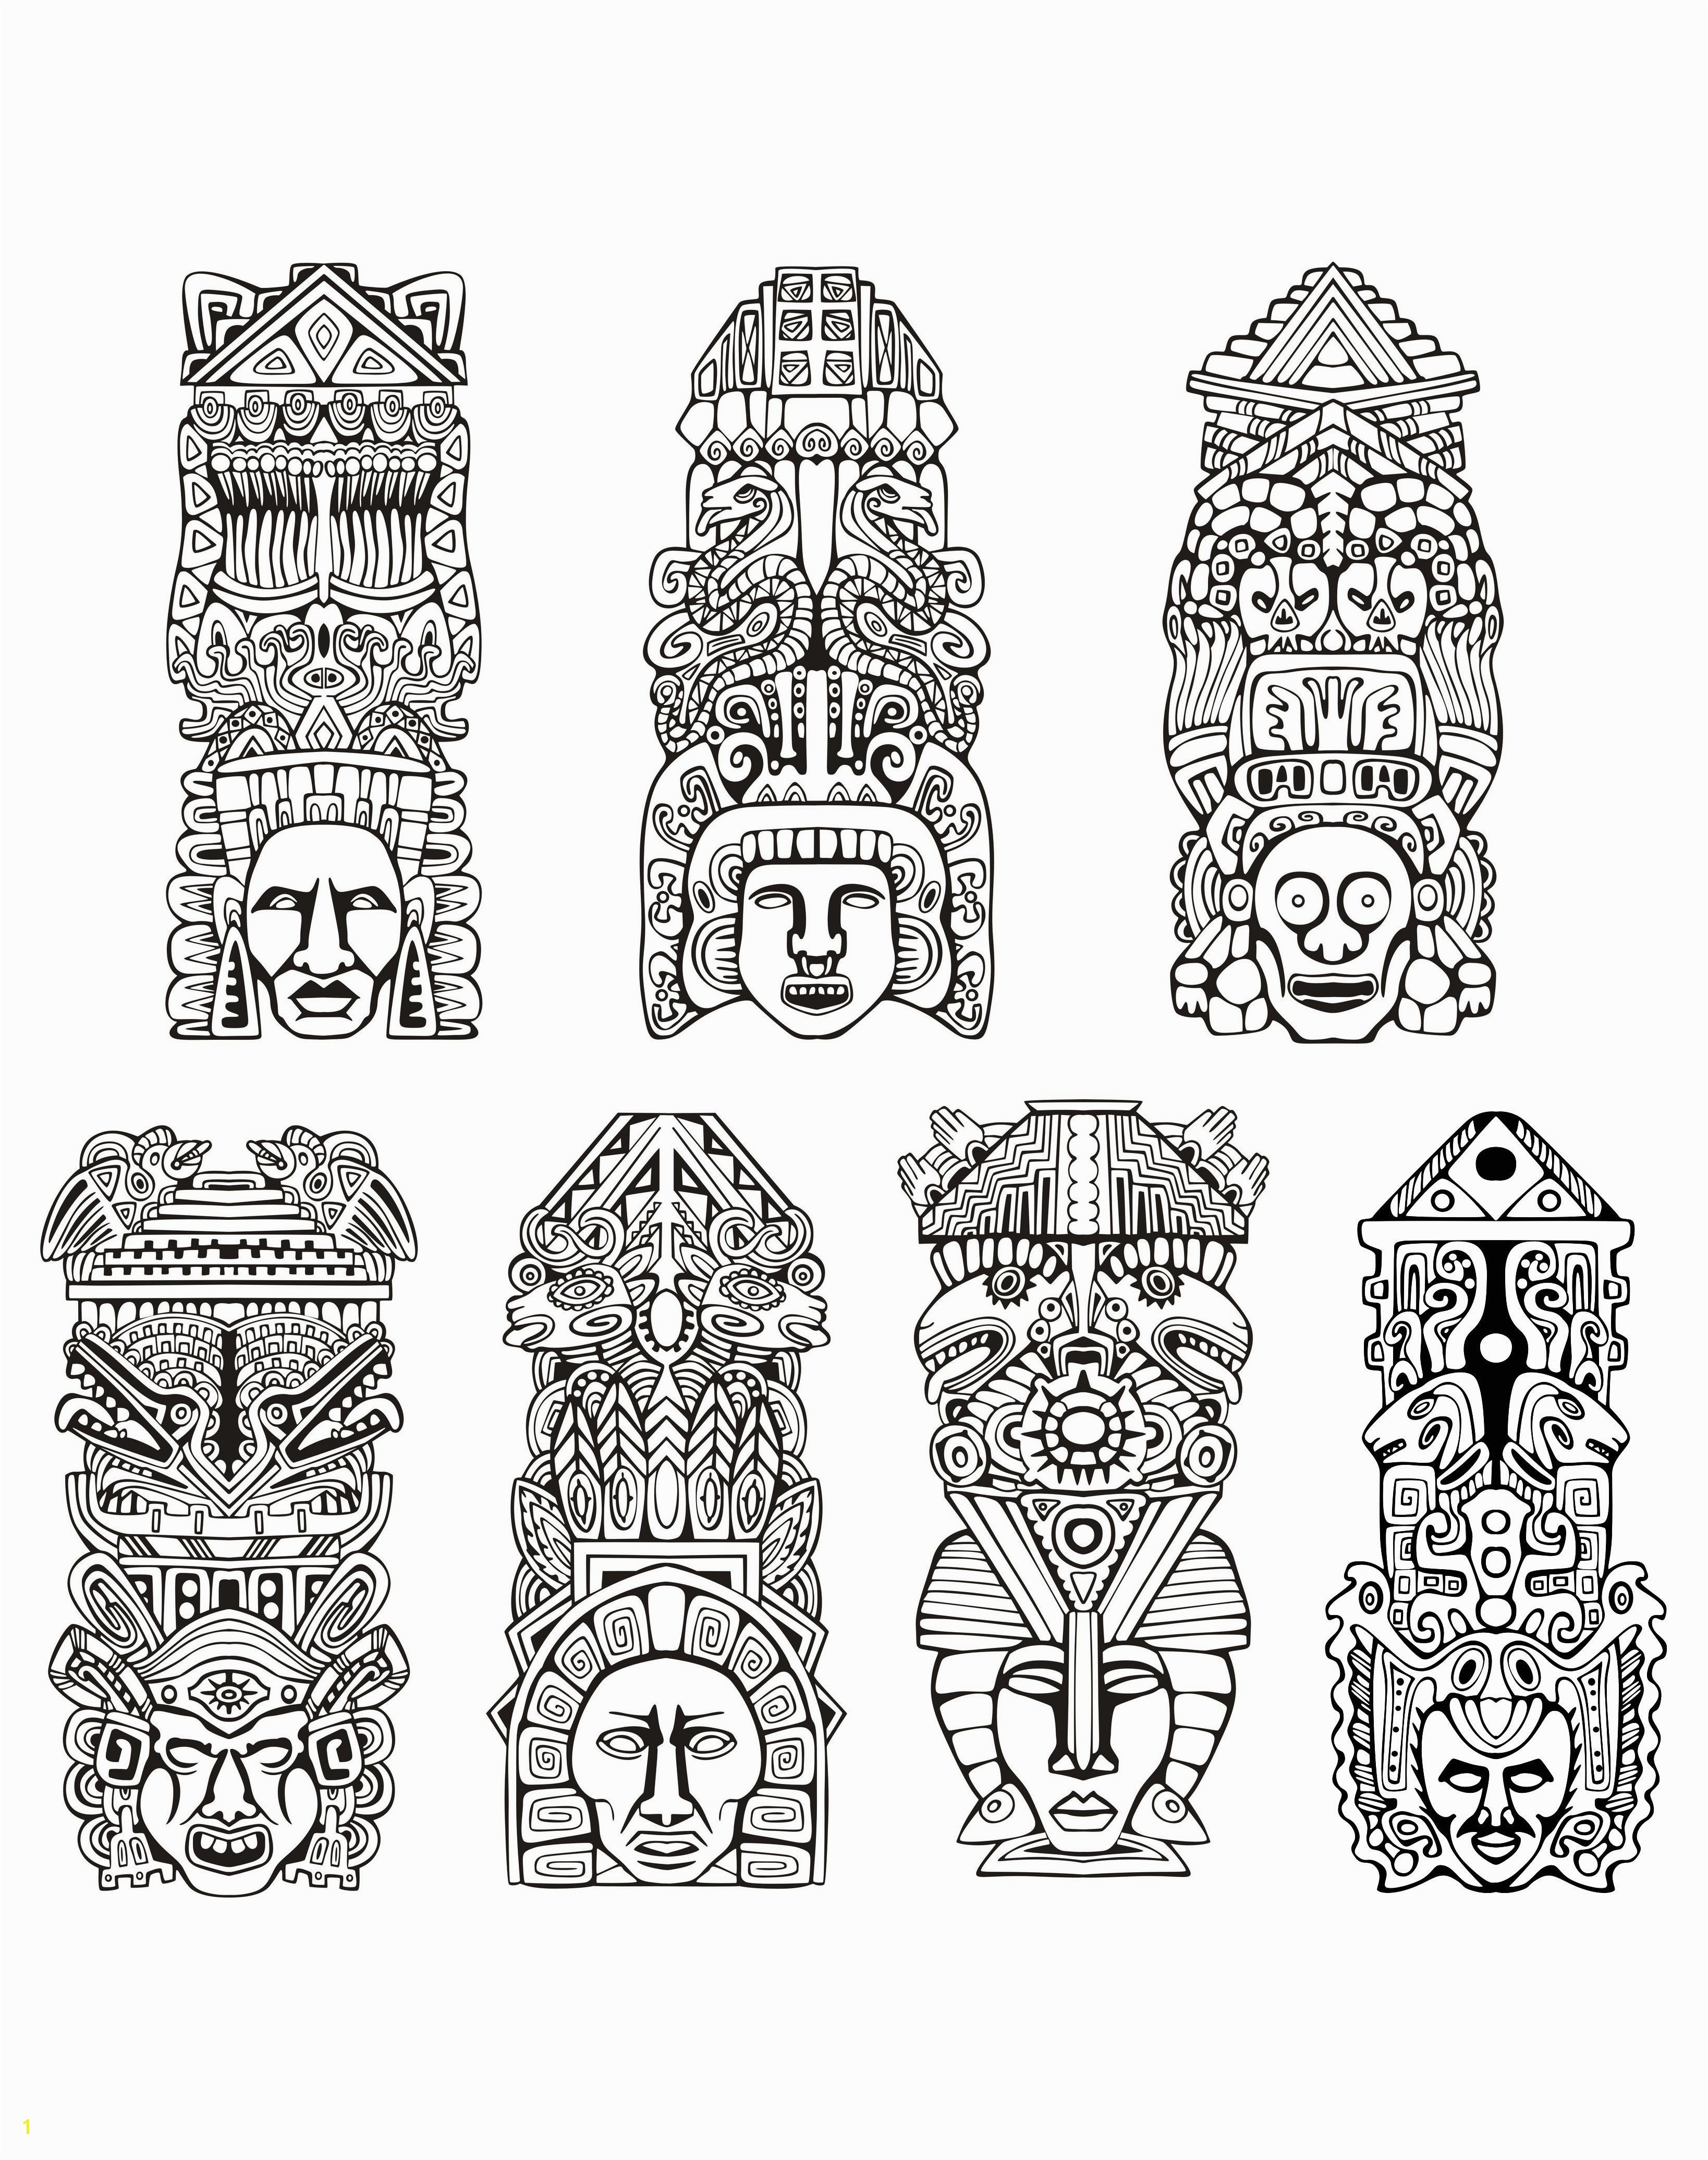 Free coloring page coloring adult totems inspiration inca mayan aztec Totems inspired by Aztecs Mayans and Incas Source rocich 123RF